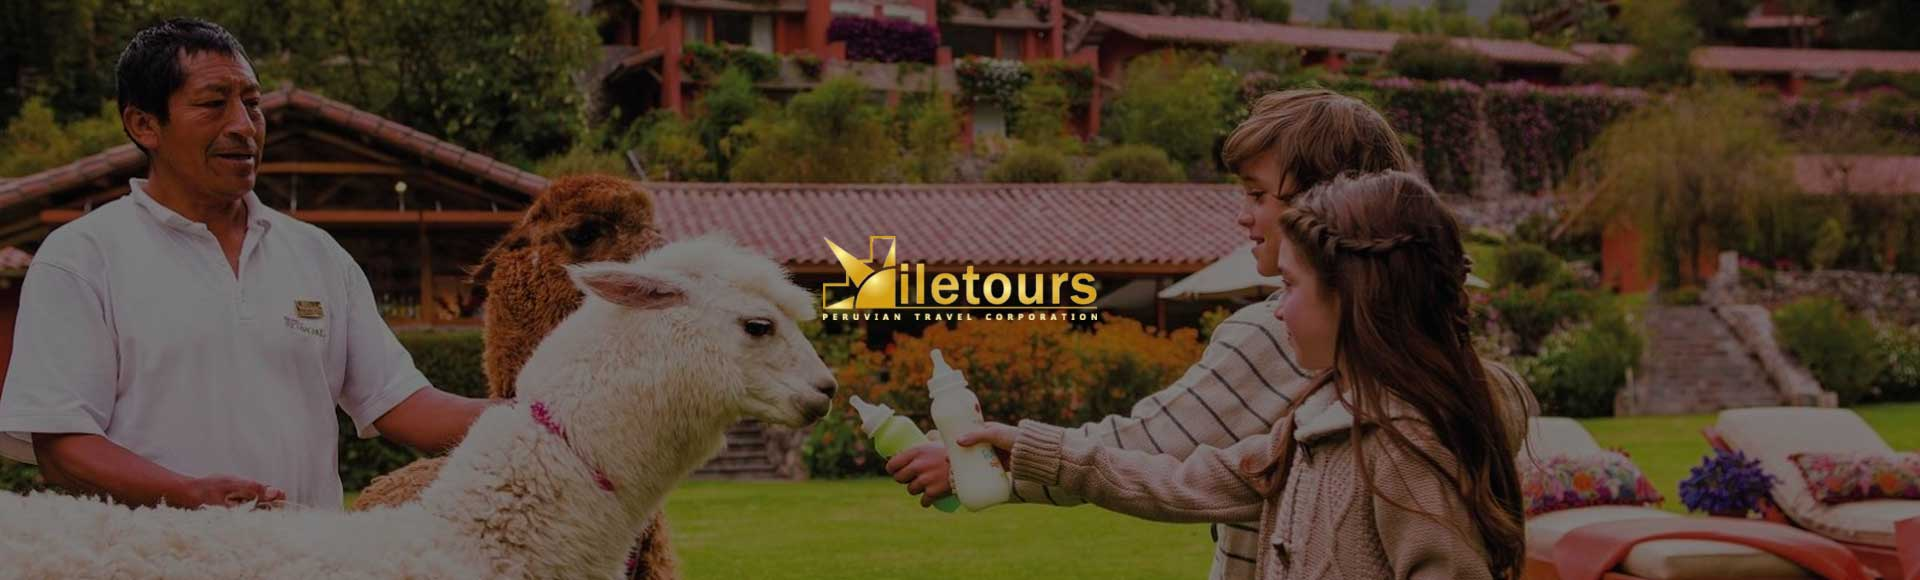 Machu Picchu Peru and Bolivia tours combined 13 Days